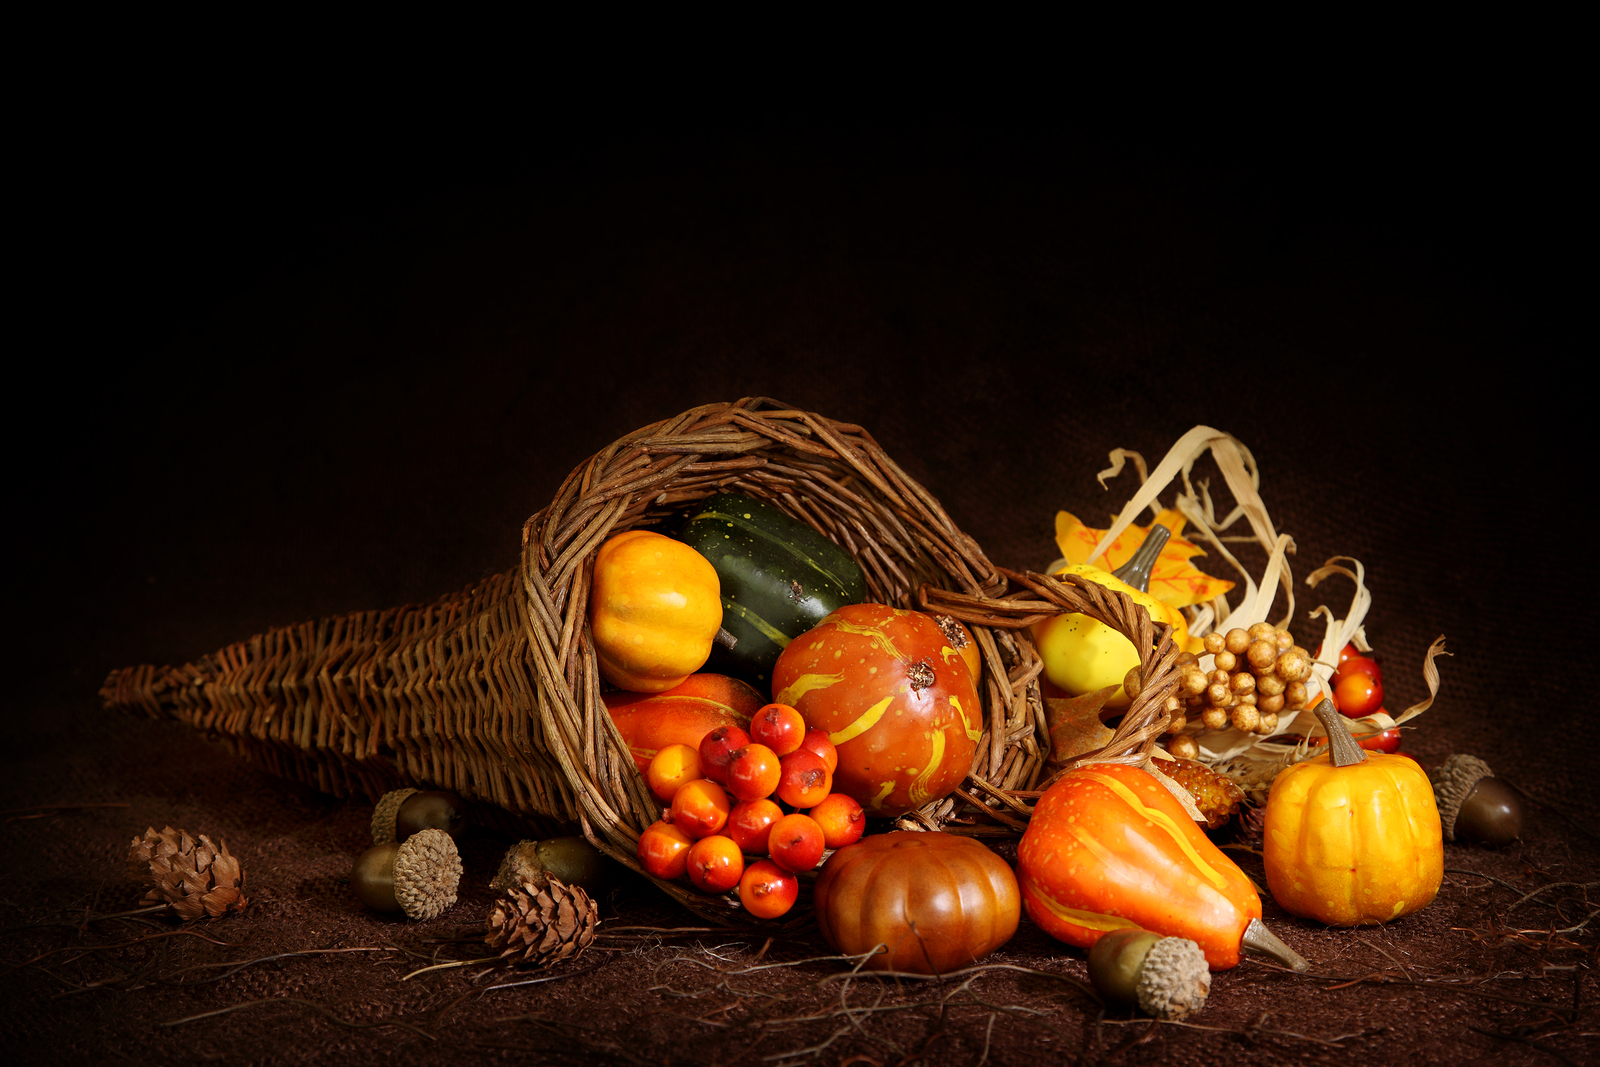 Cornucopia with pumpkins on brown background, close up